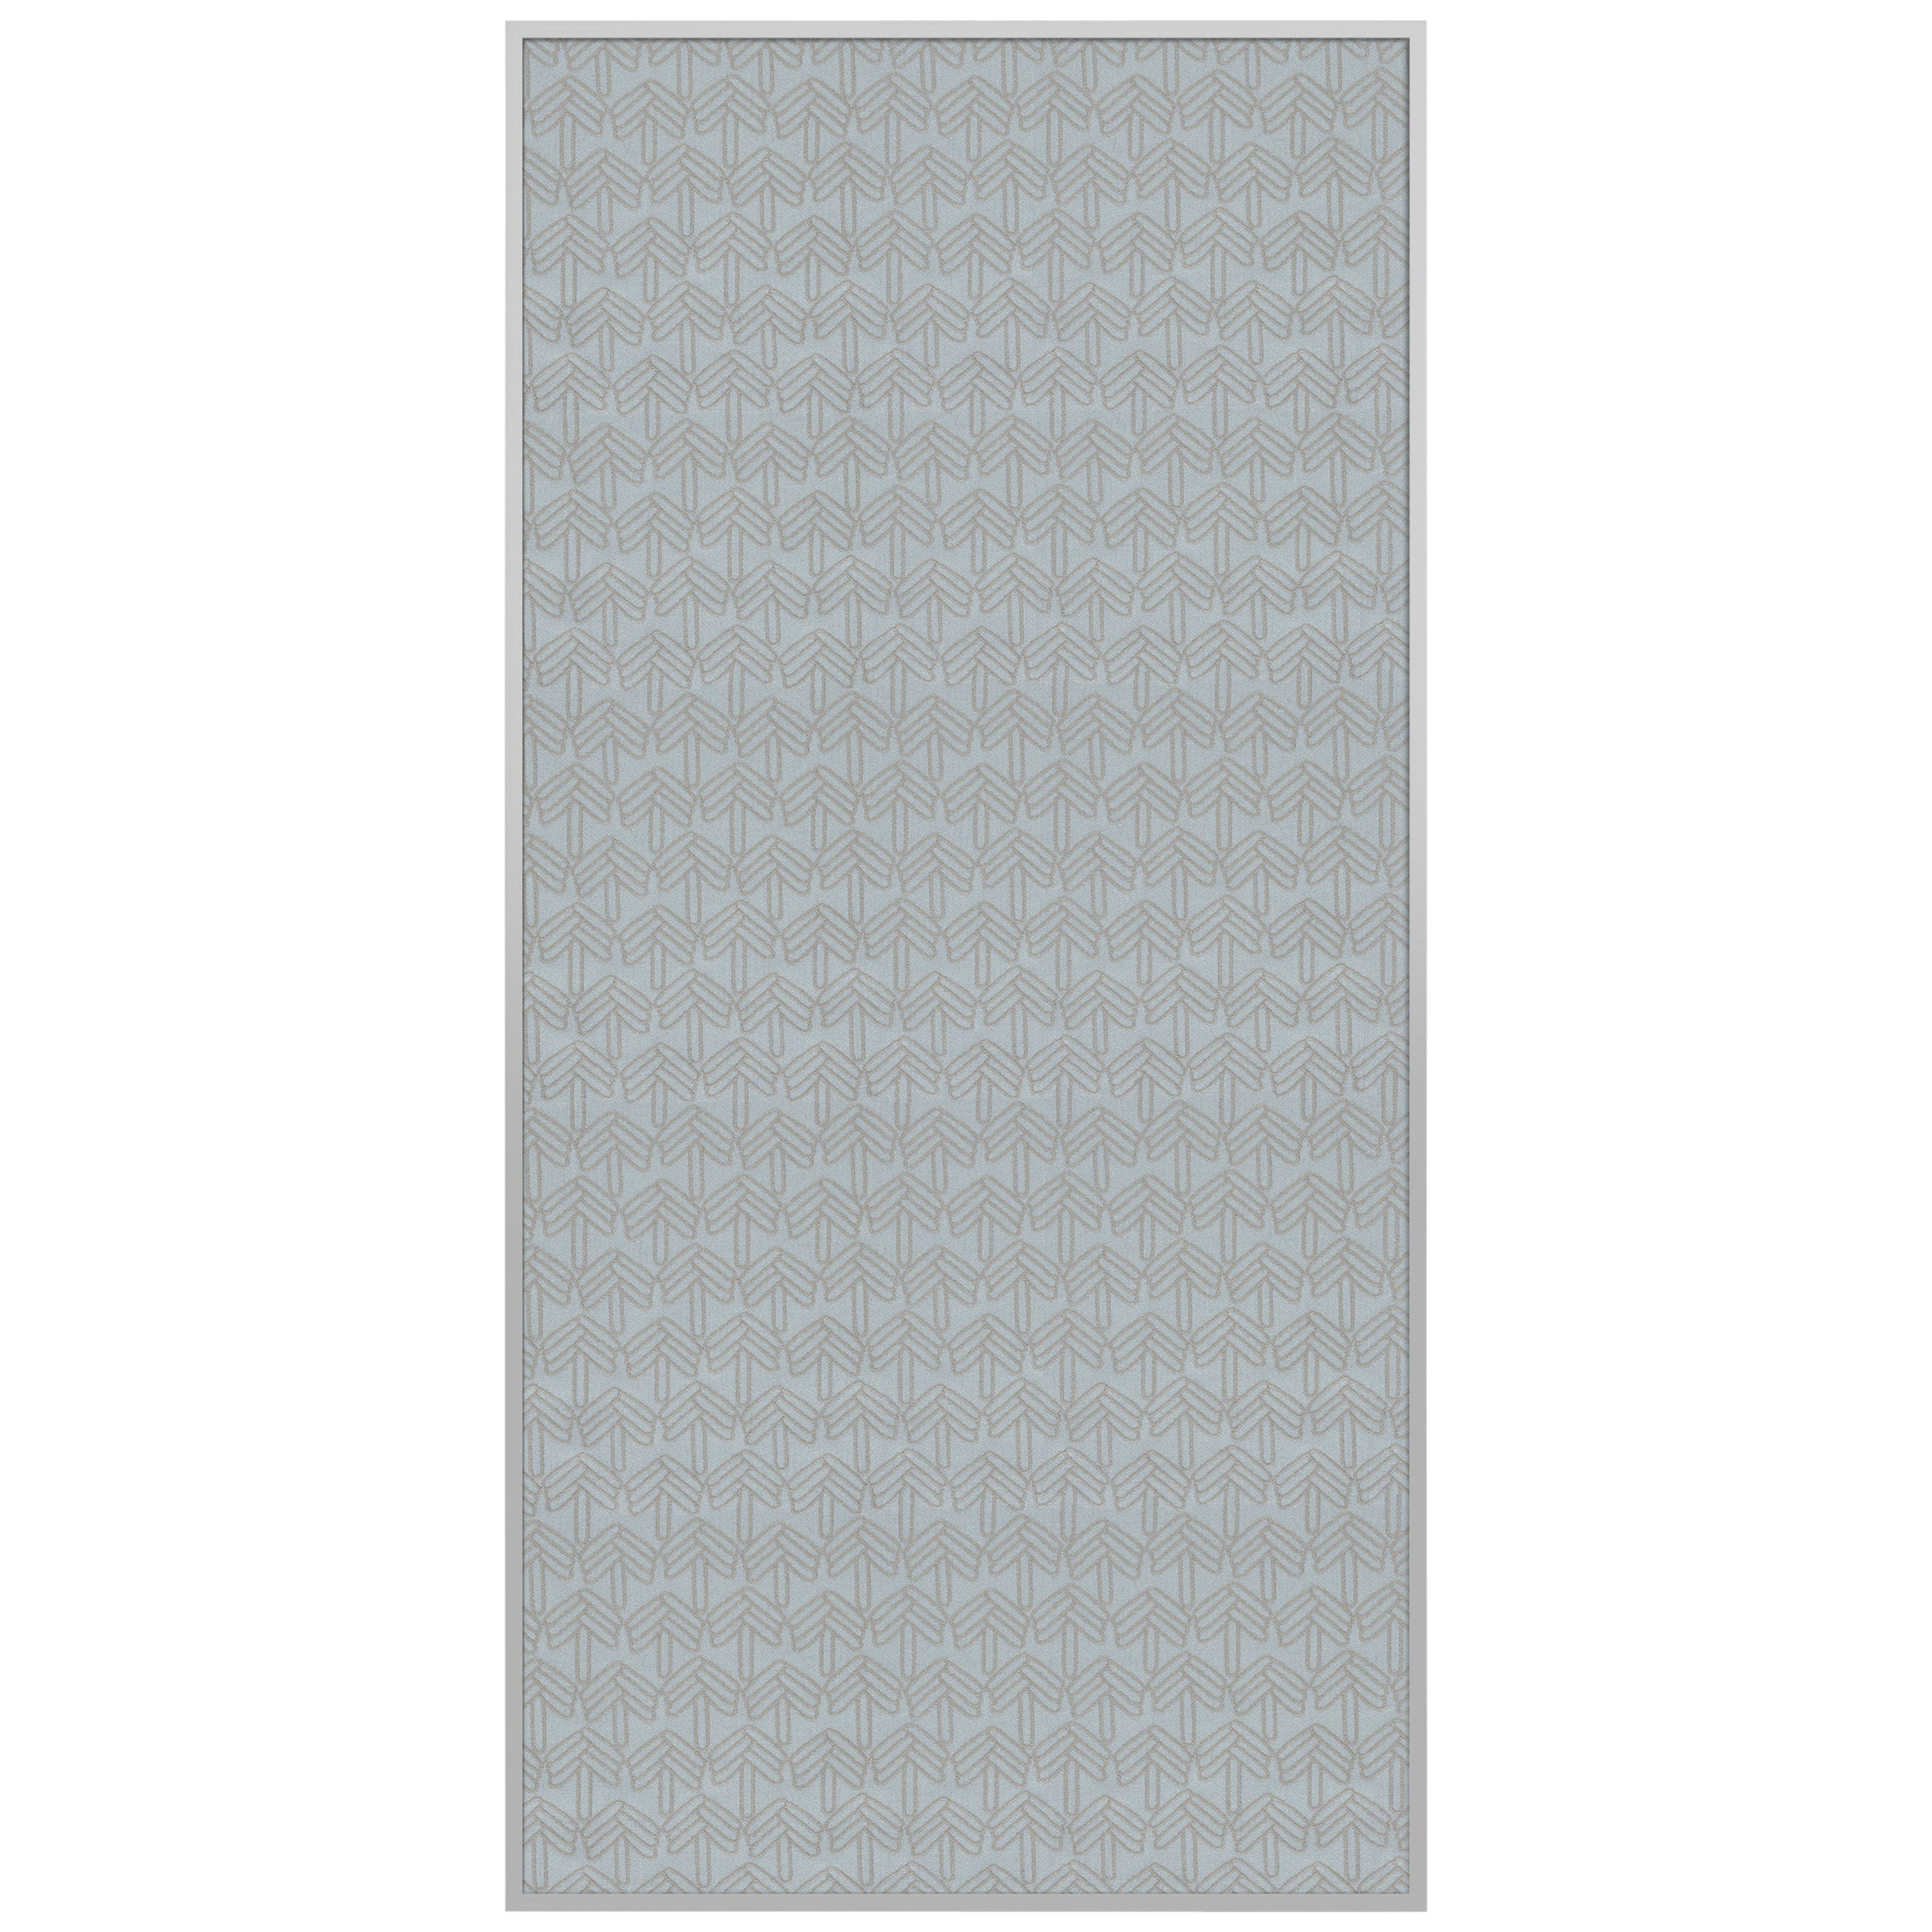 Acustica, Opus 2, Noise Cancelling Acoustic Panel, Grey Frame